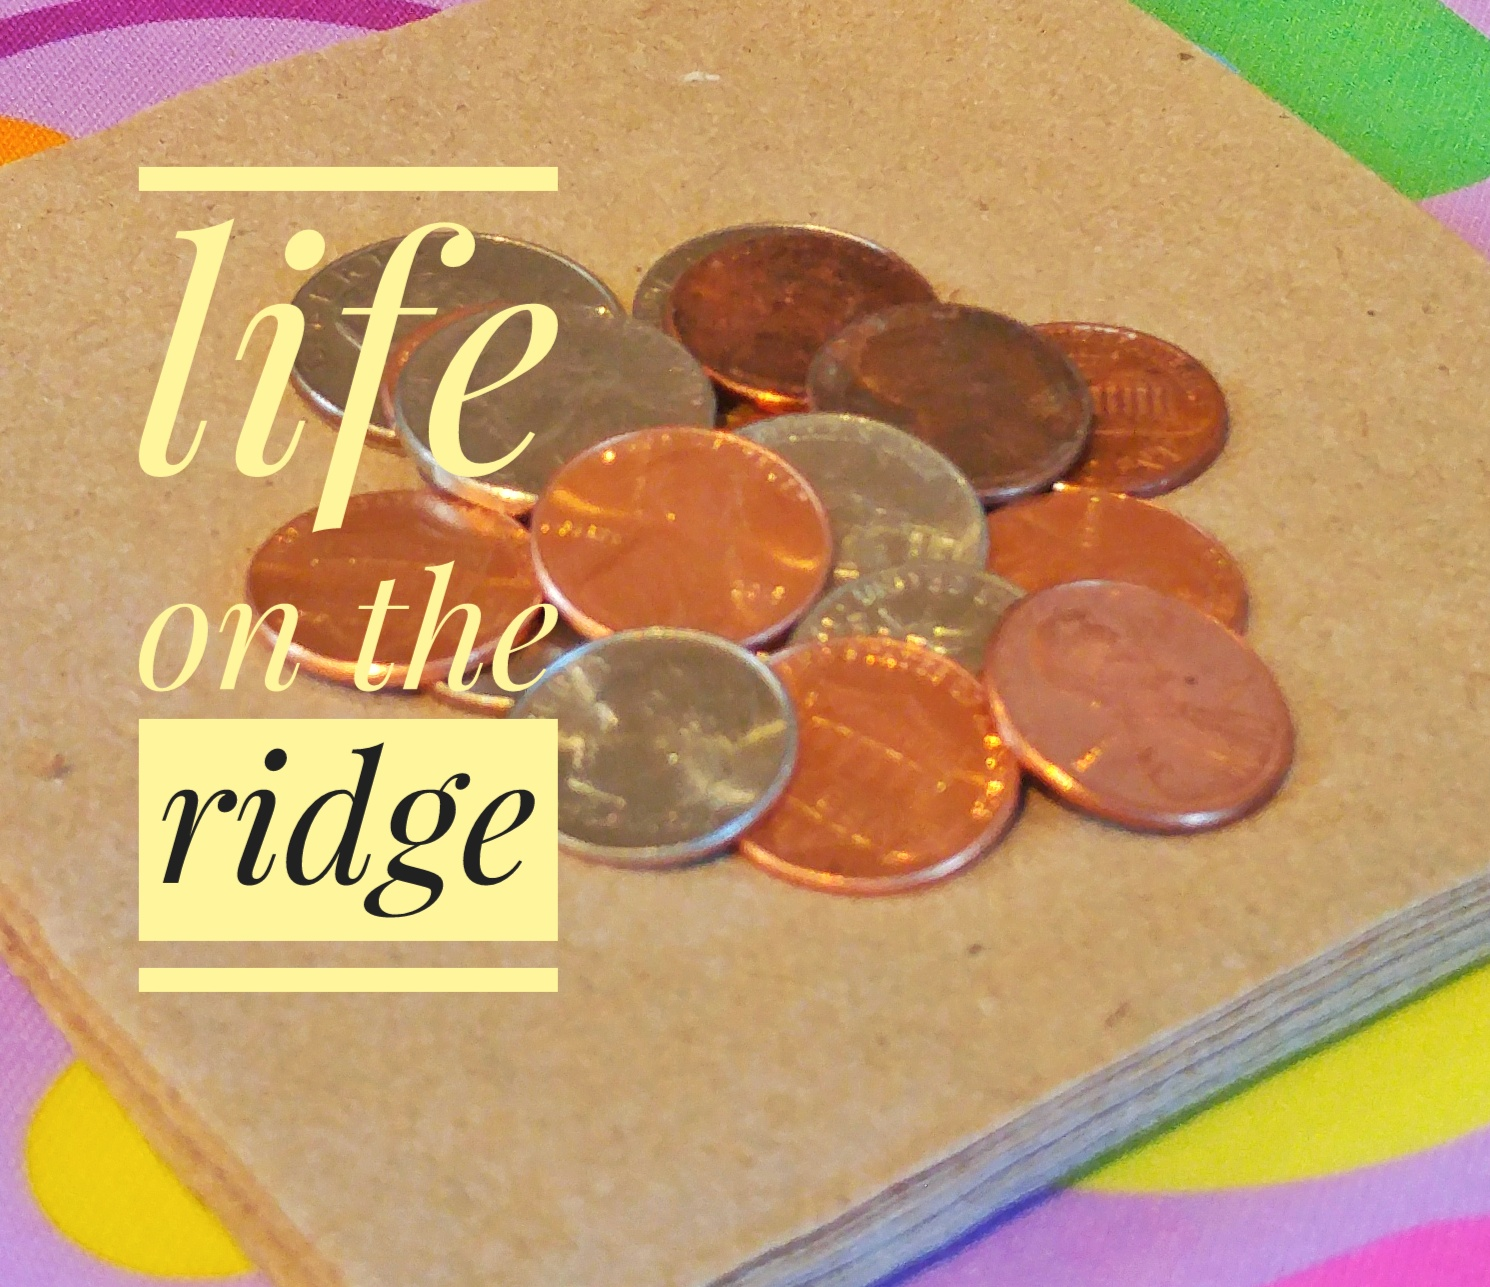 every coin has two sides essay Be careful, don't flow with the stream of the river, every coin has two sides cover both the aspectswhile writing your essay, donot get agree one sided for any topic given try to see all the aspects of the topic of essay.